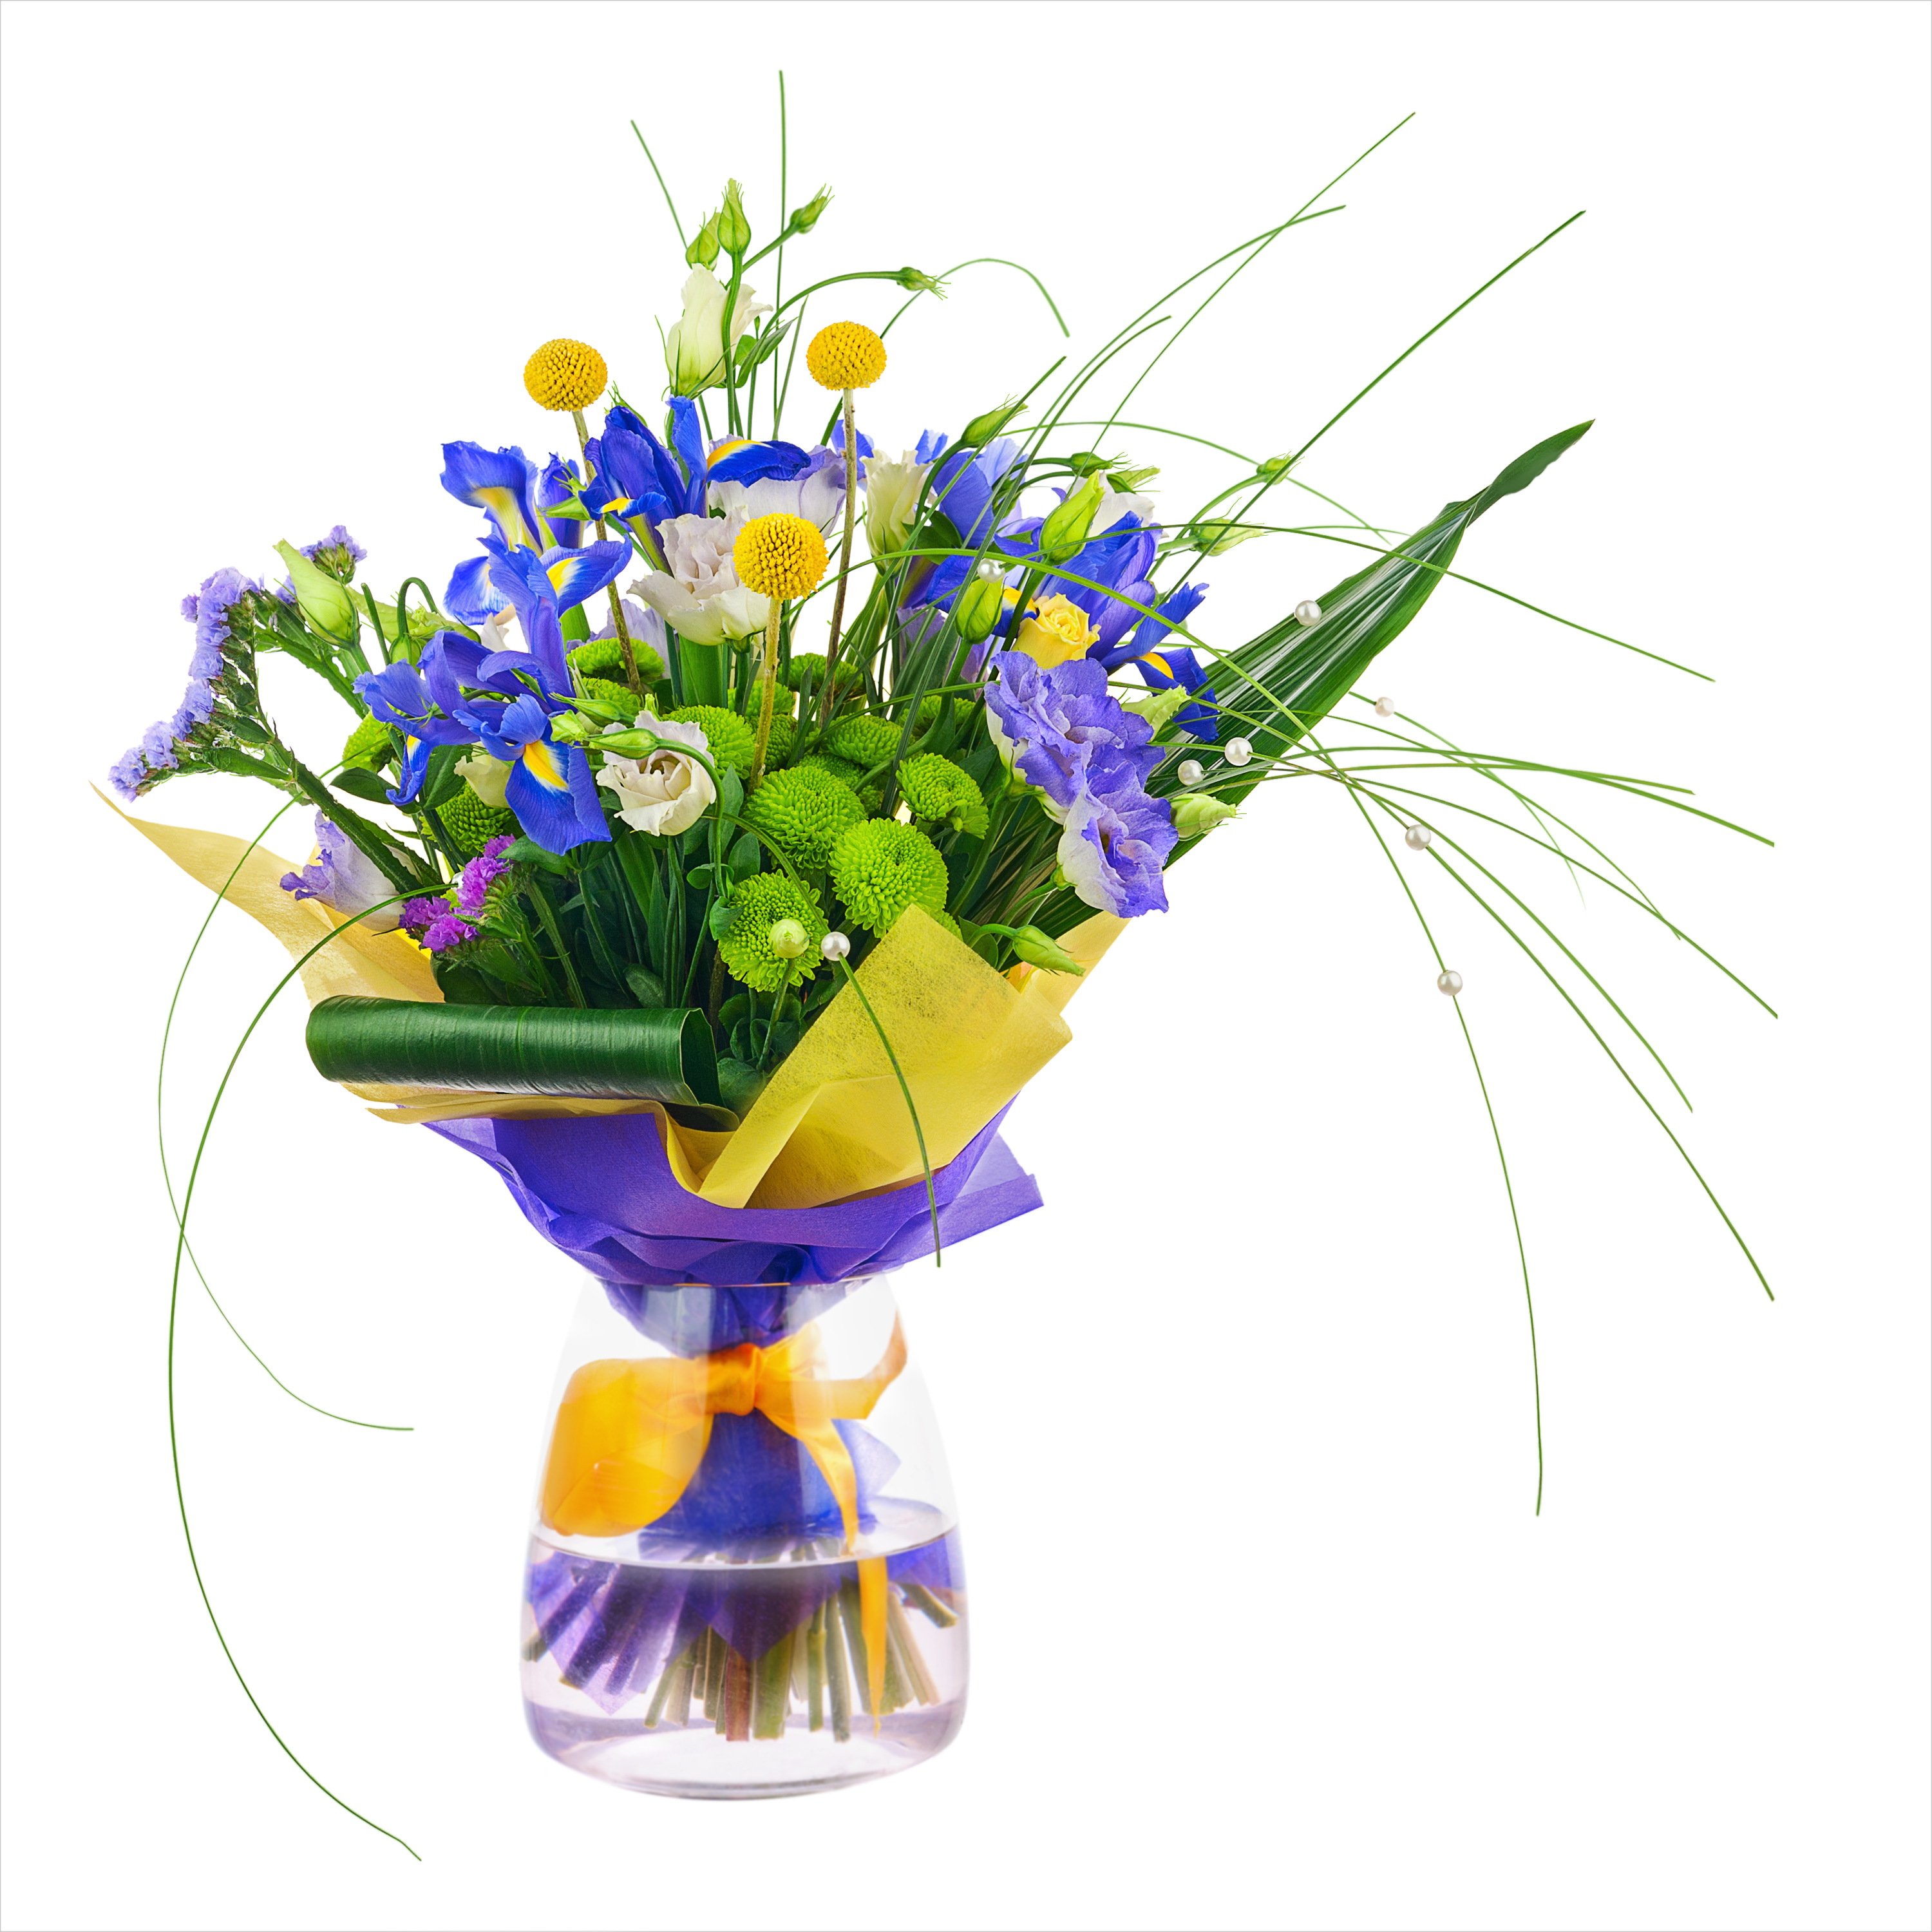 Irises dhalia fleuriste flower bouquet from roses green carnation iris and statice flowers in glass vase isolated mightylinksfo Images